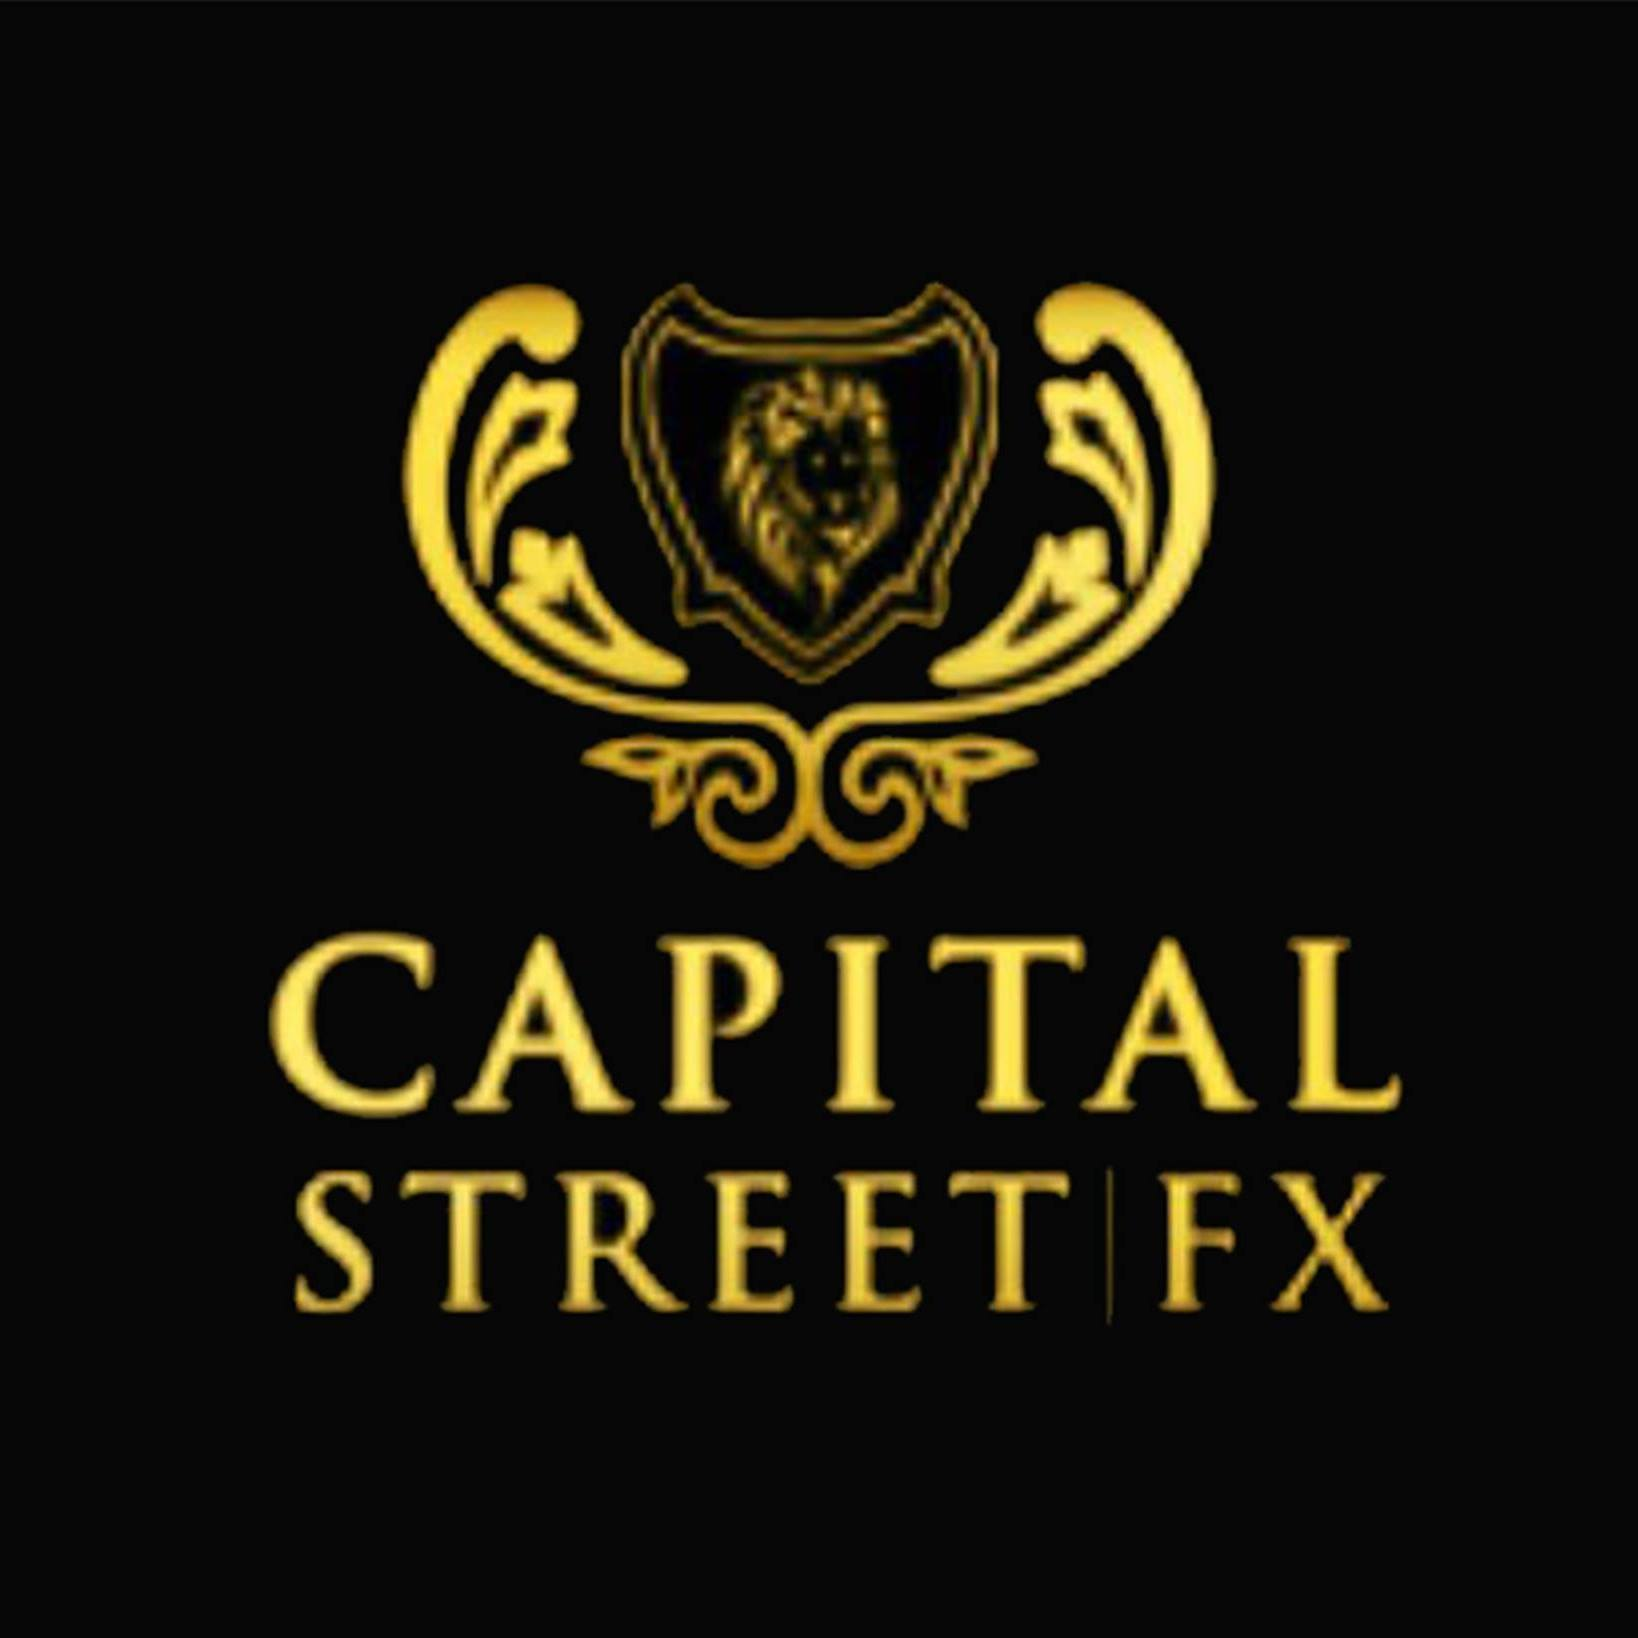 Capital Street Fx - 650% Tradable Bonus | Big Bonus Offer